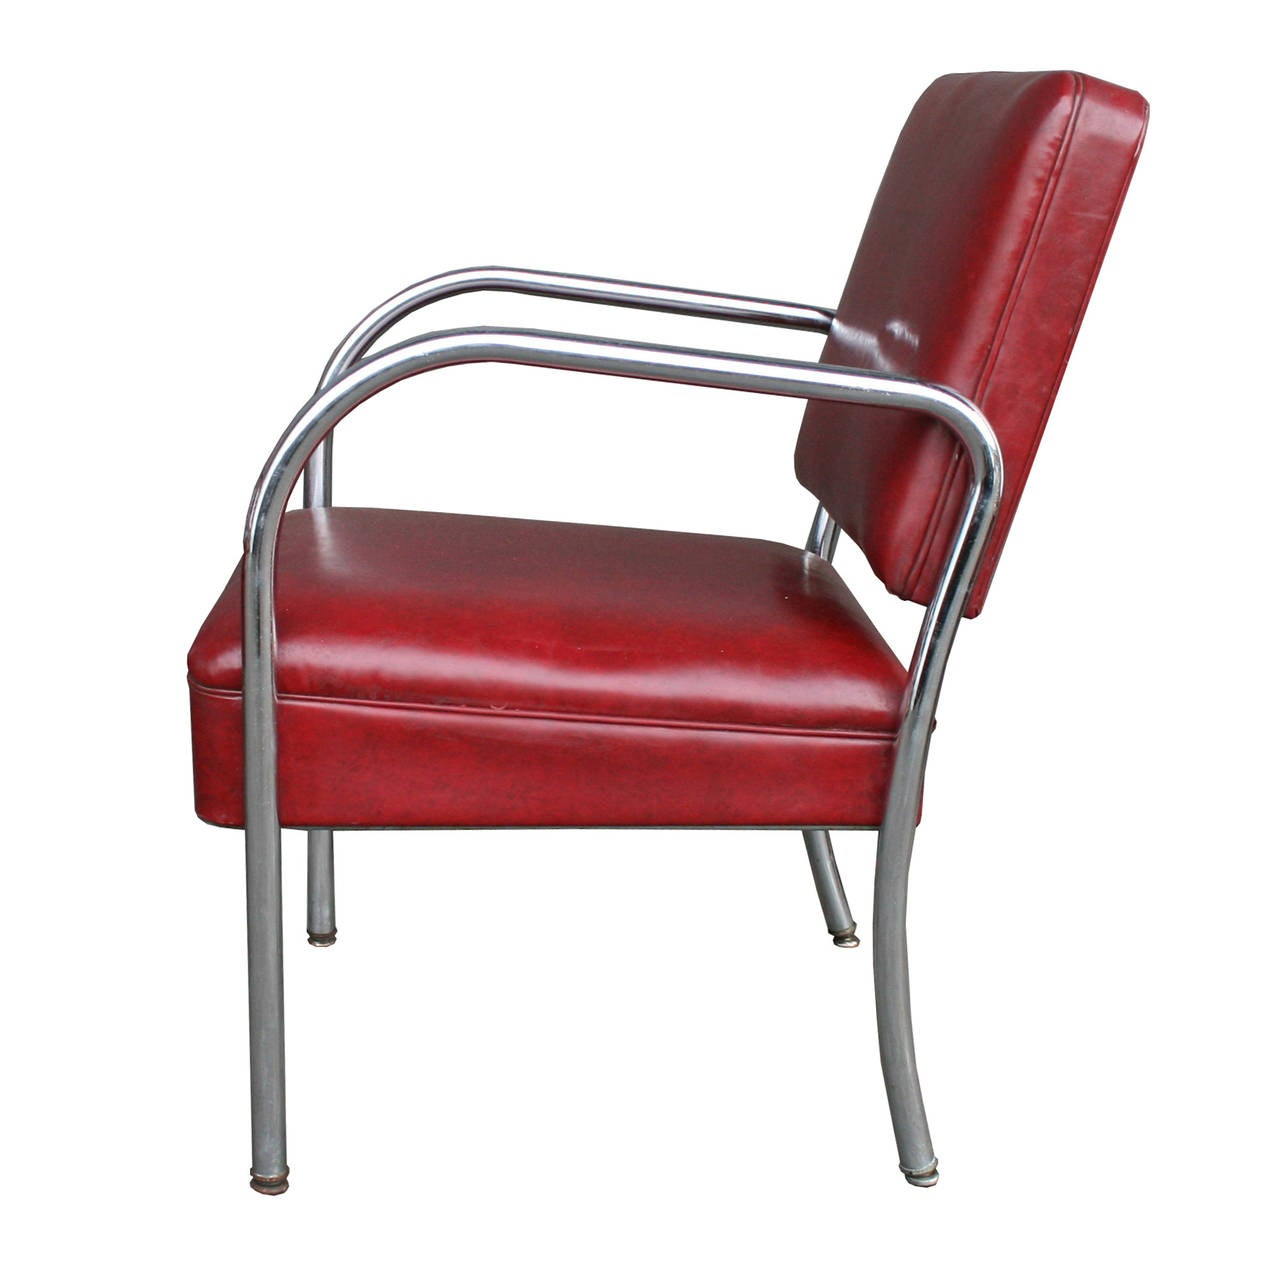 Barber Shop Chairs Set Of Four Maroon Vinyl And Chrome Barber Shop Chairs